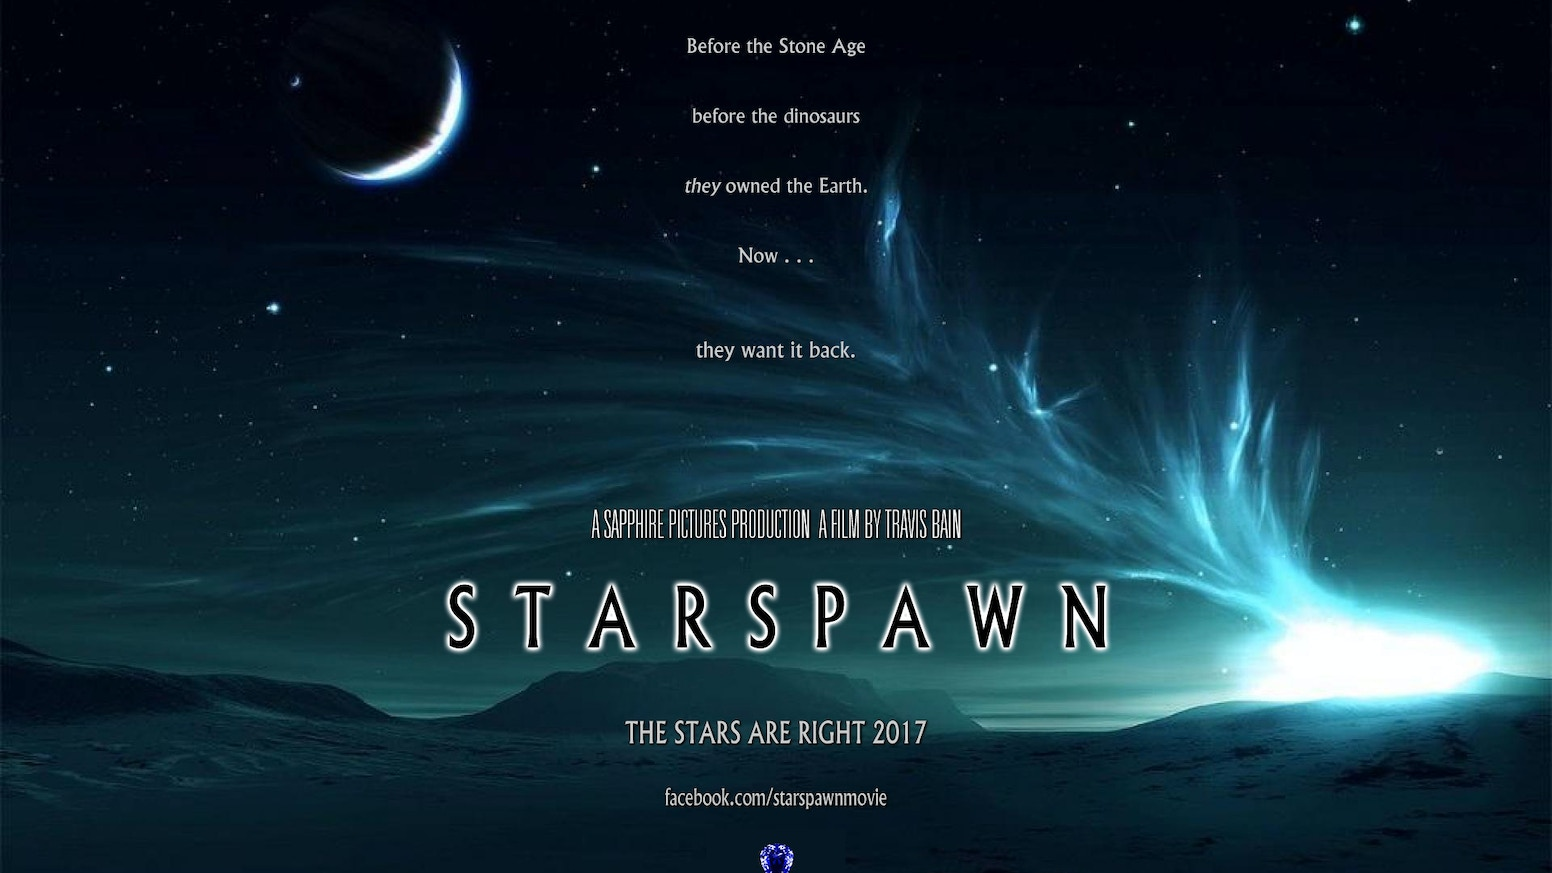 Starspawn - an H P  Lovecraft-inspired sci-fi/horror film by